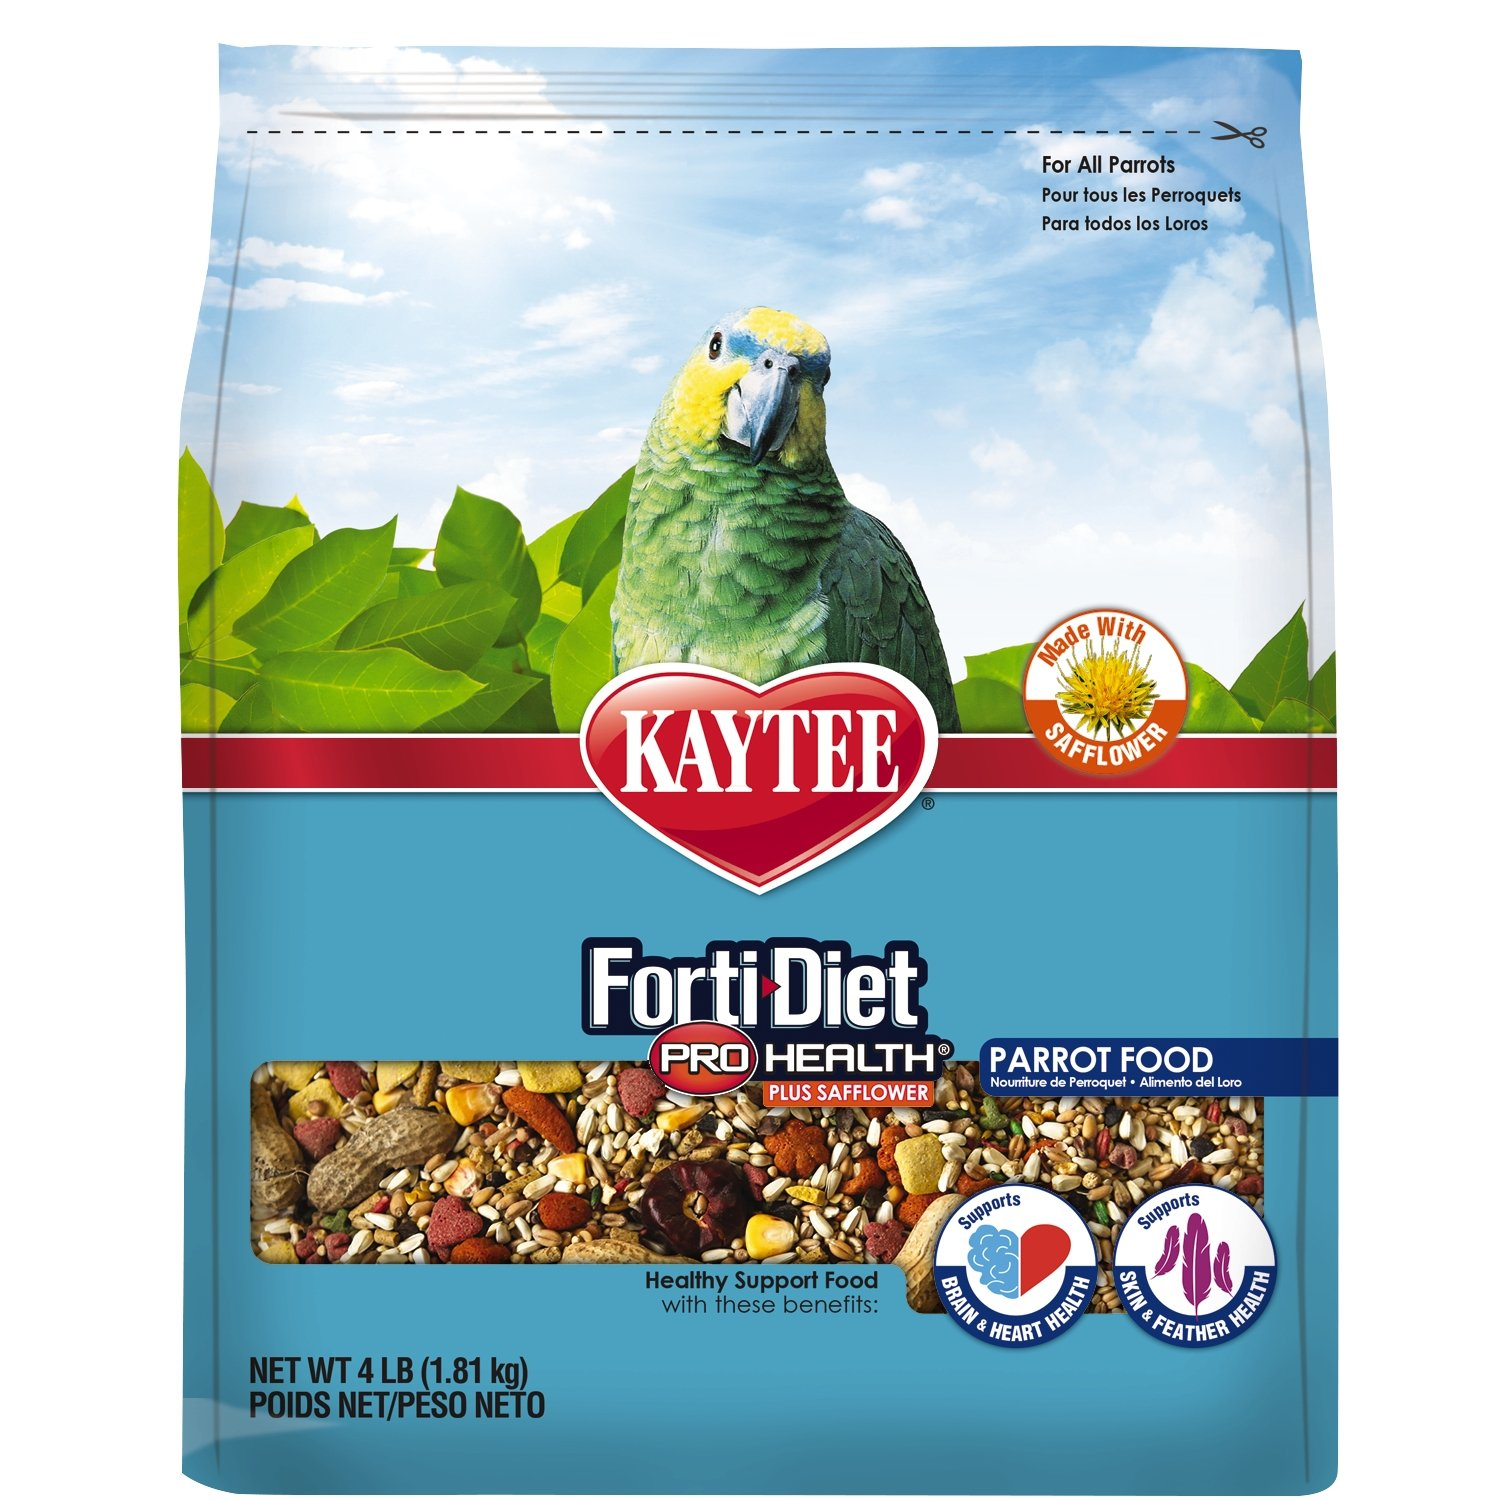 Kaytee Forti-Diet Pro Health with Safflower Parrot Food, 4 lb by Kaytee